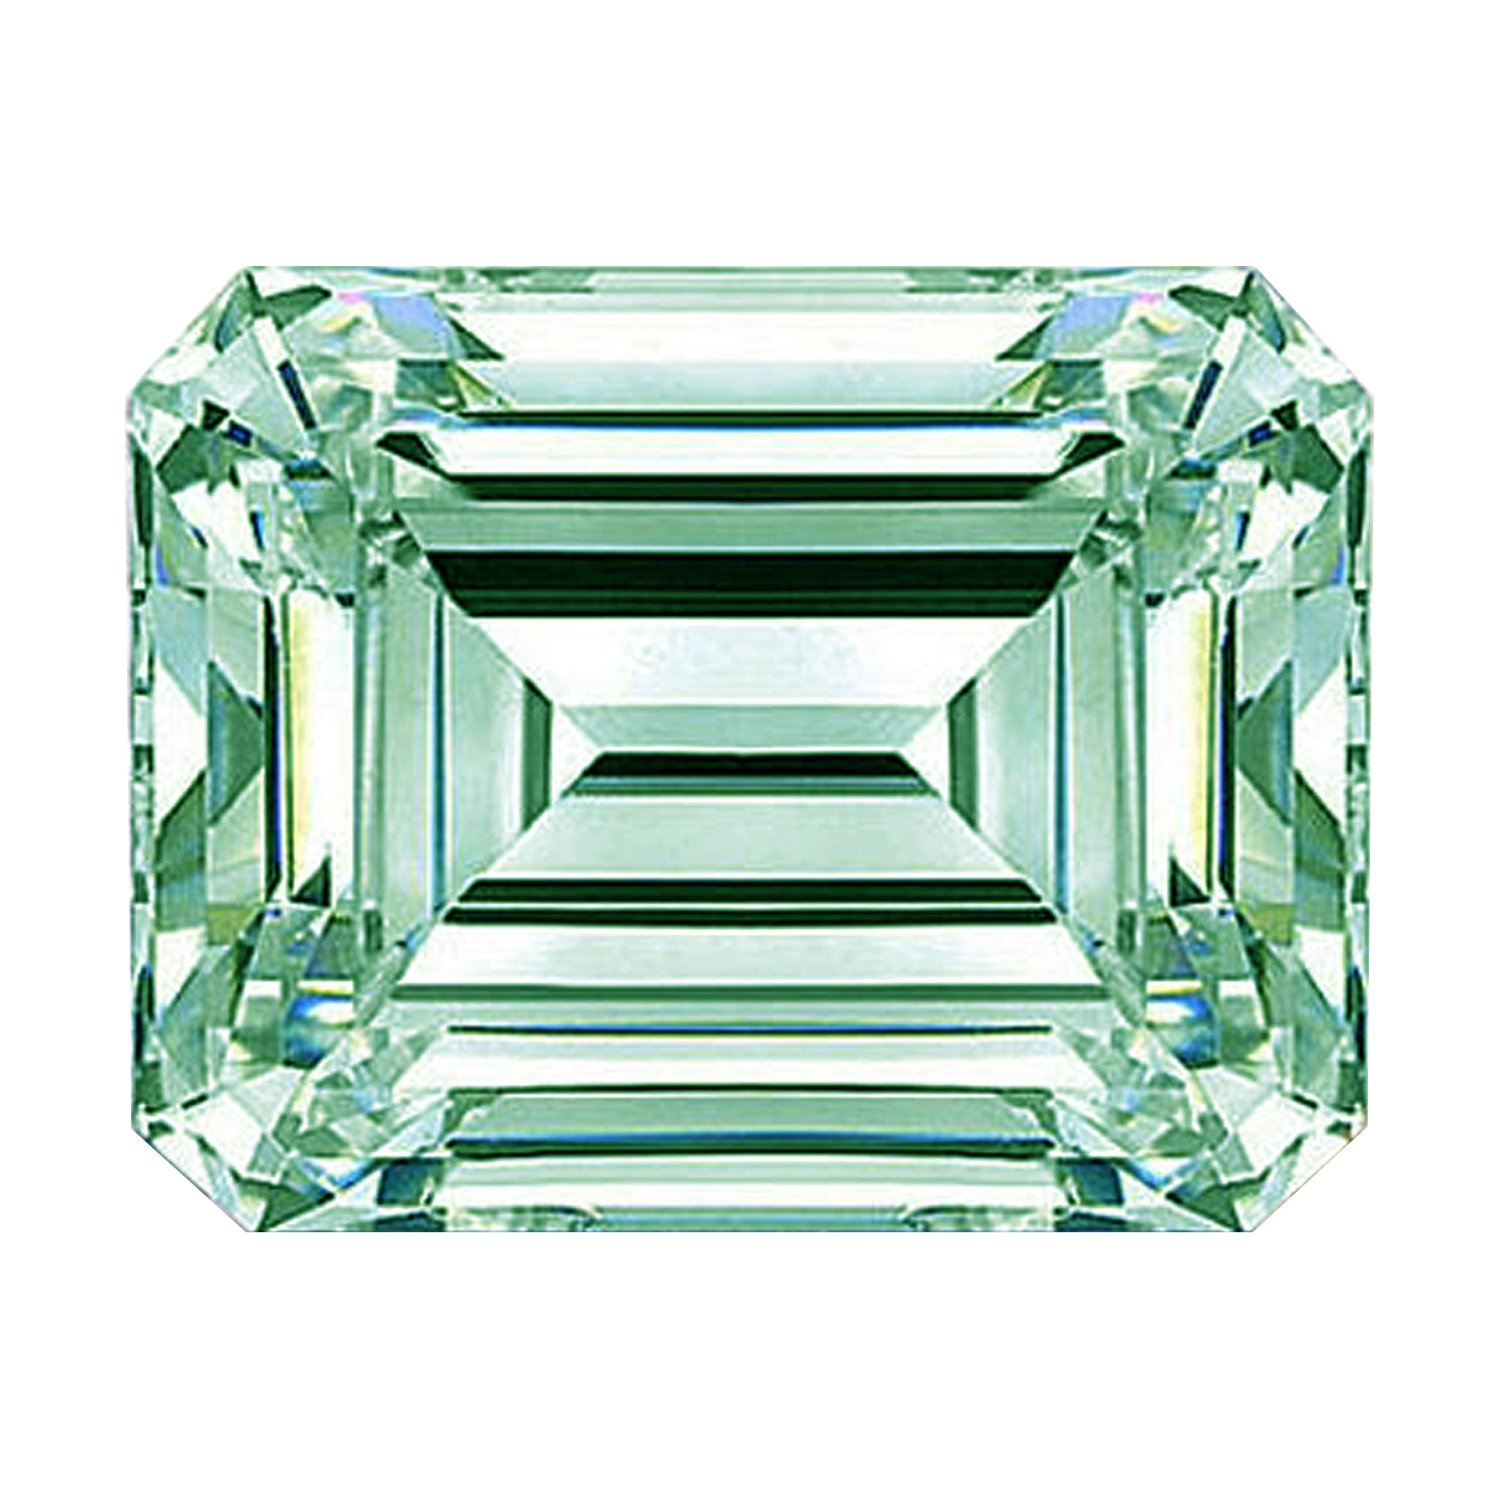 RINGJEWEL Emerald-Cut Loose Moissanite Use 4 Pendant/Ring Off White Ice Blue Color (3.44 ct,SI1 Clarity) by RINGJEWEL